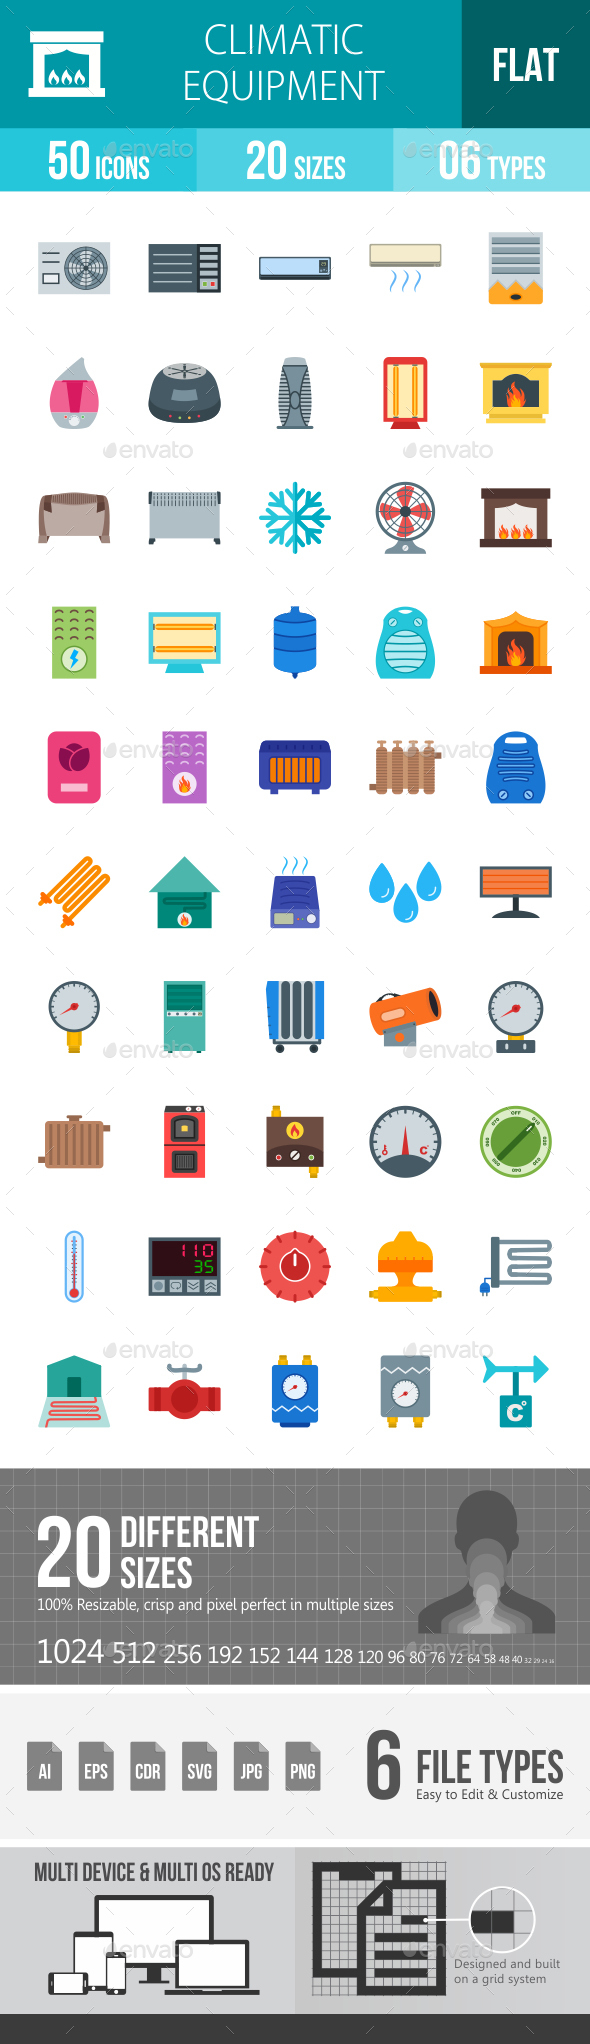 Climatic Equipment Flat Multicolor Icons - Icons